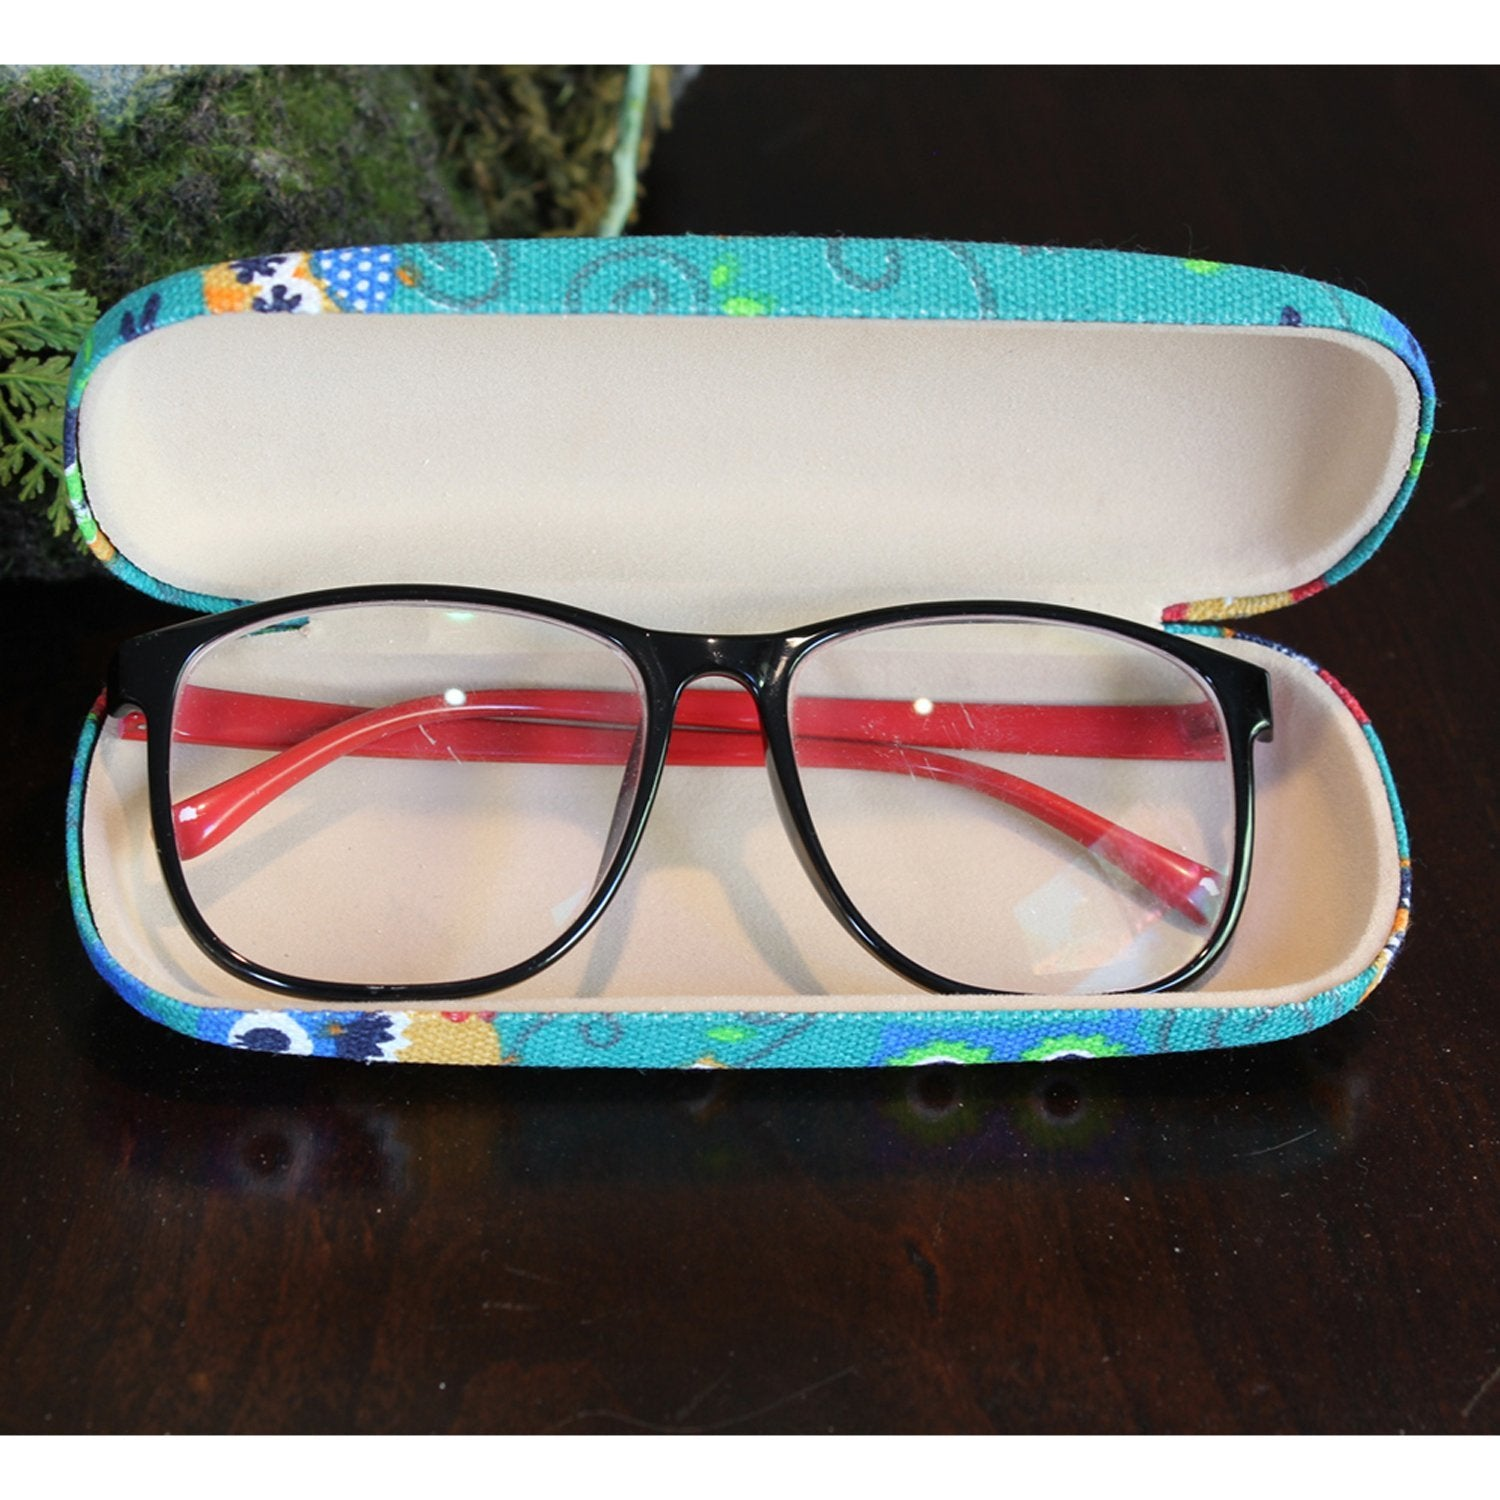 "#EYC-1698 Fabric Covered Eyewear Case 6 1/4""W X 2 3/8""D X 1 3/8""H 